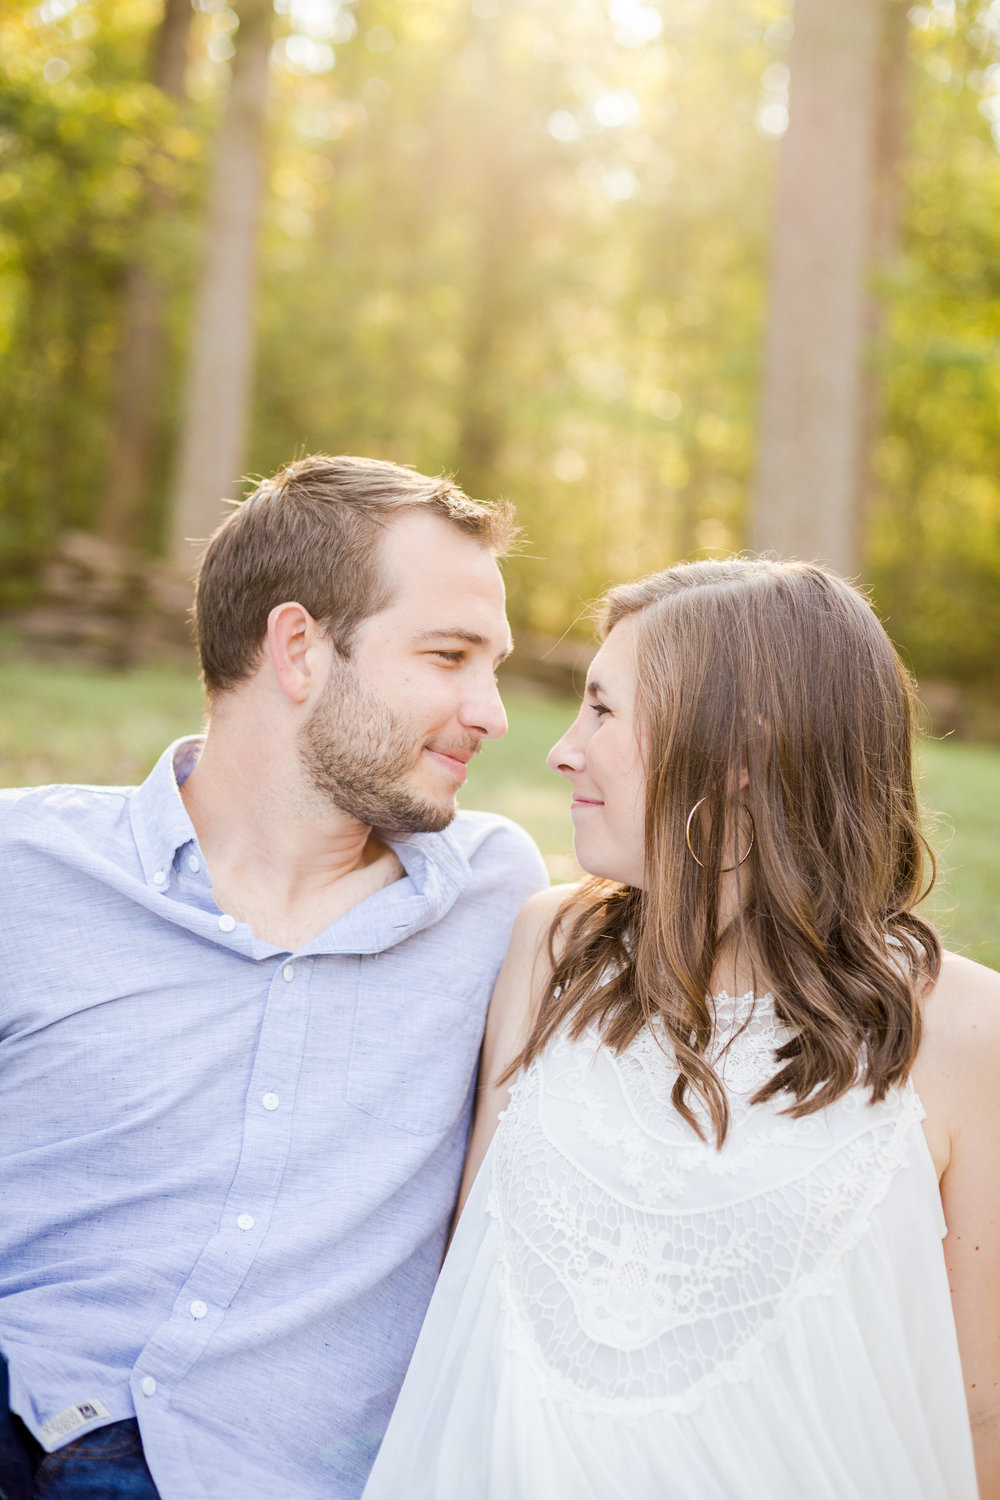 madison&drew-104.jpg